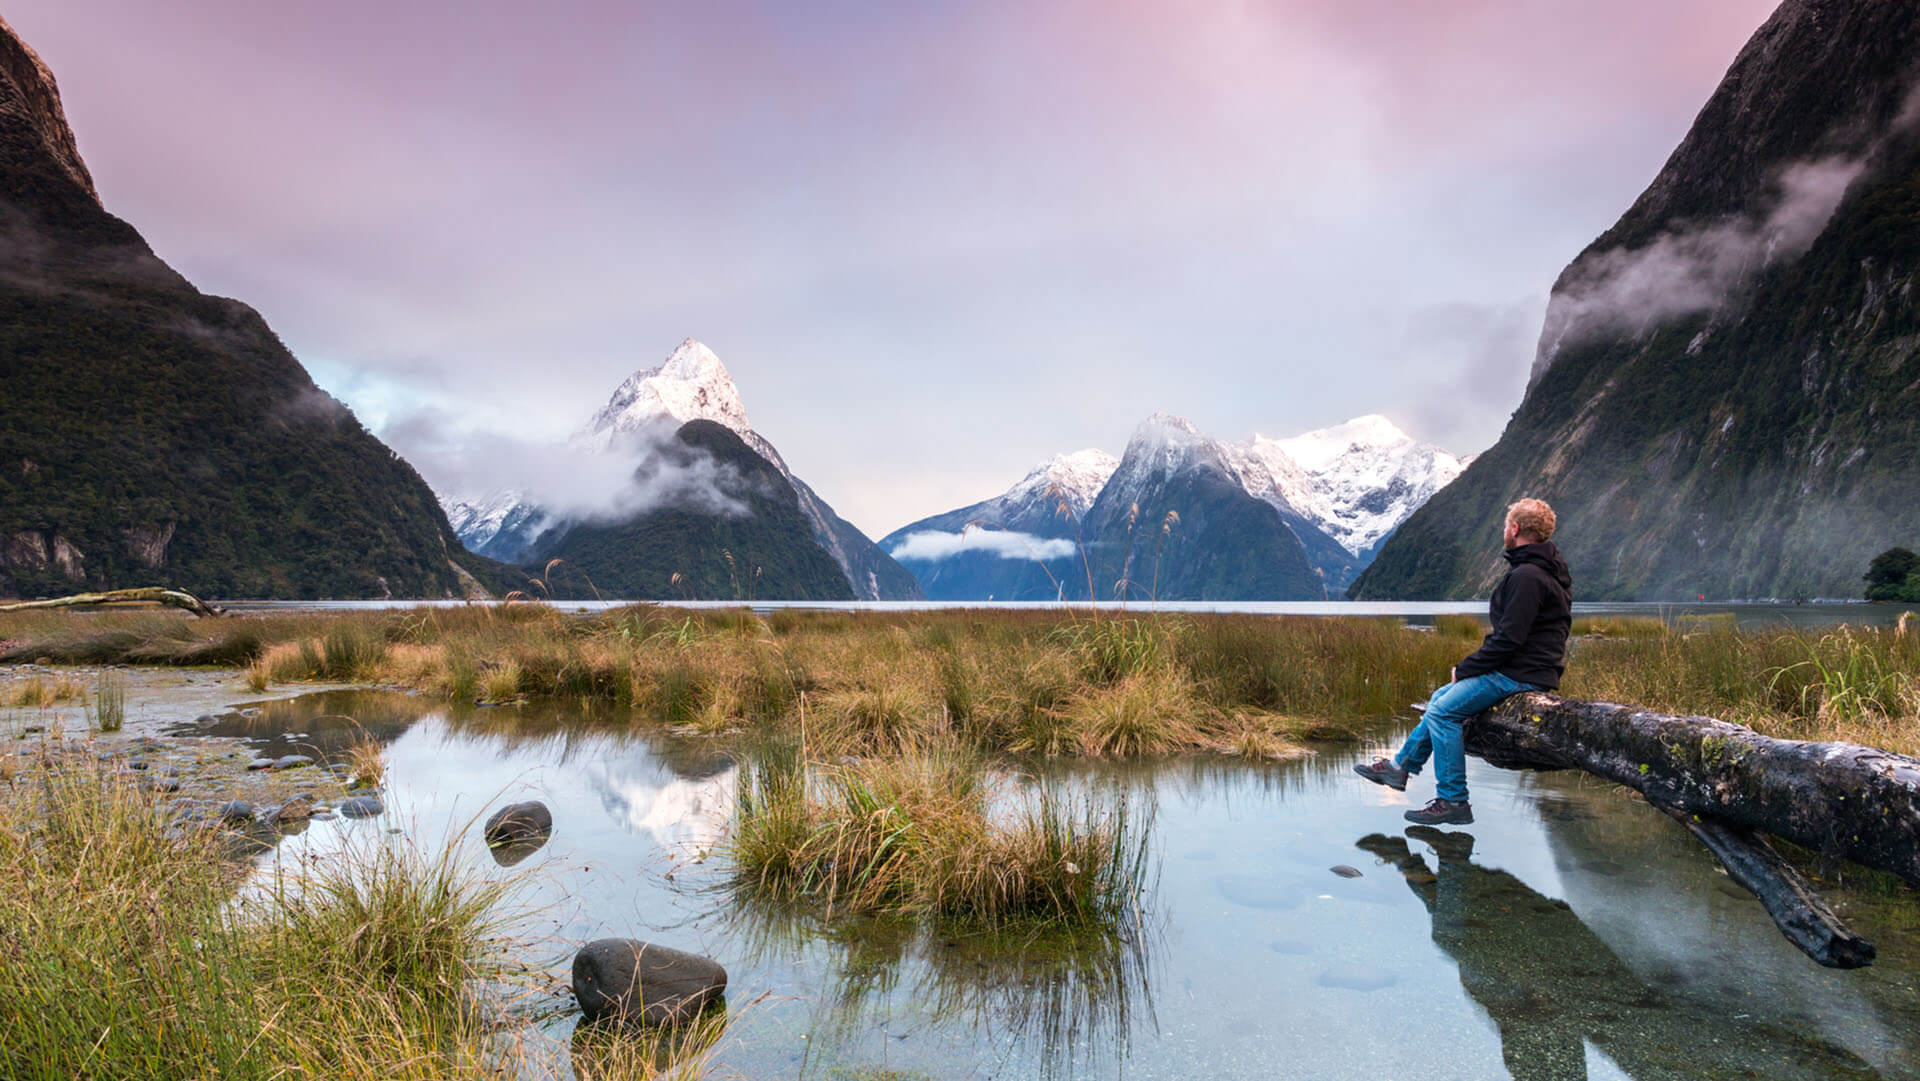 Man looking at beautiful landscape at dawn, Milford, New Zealand